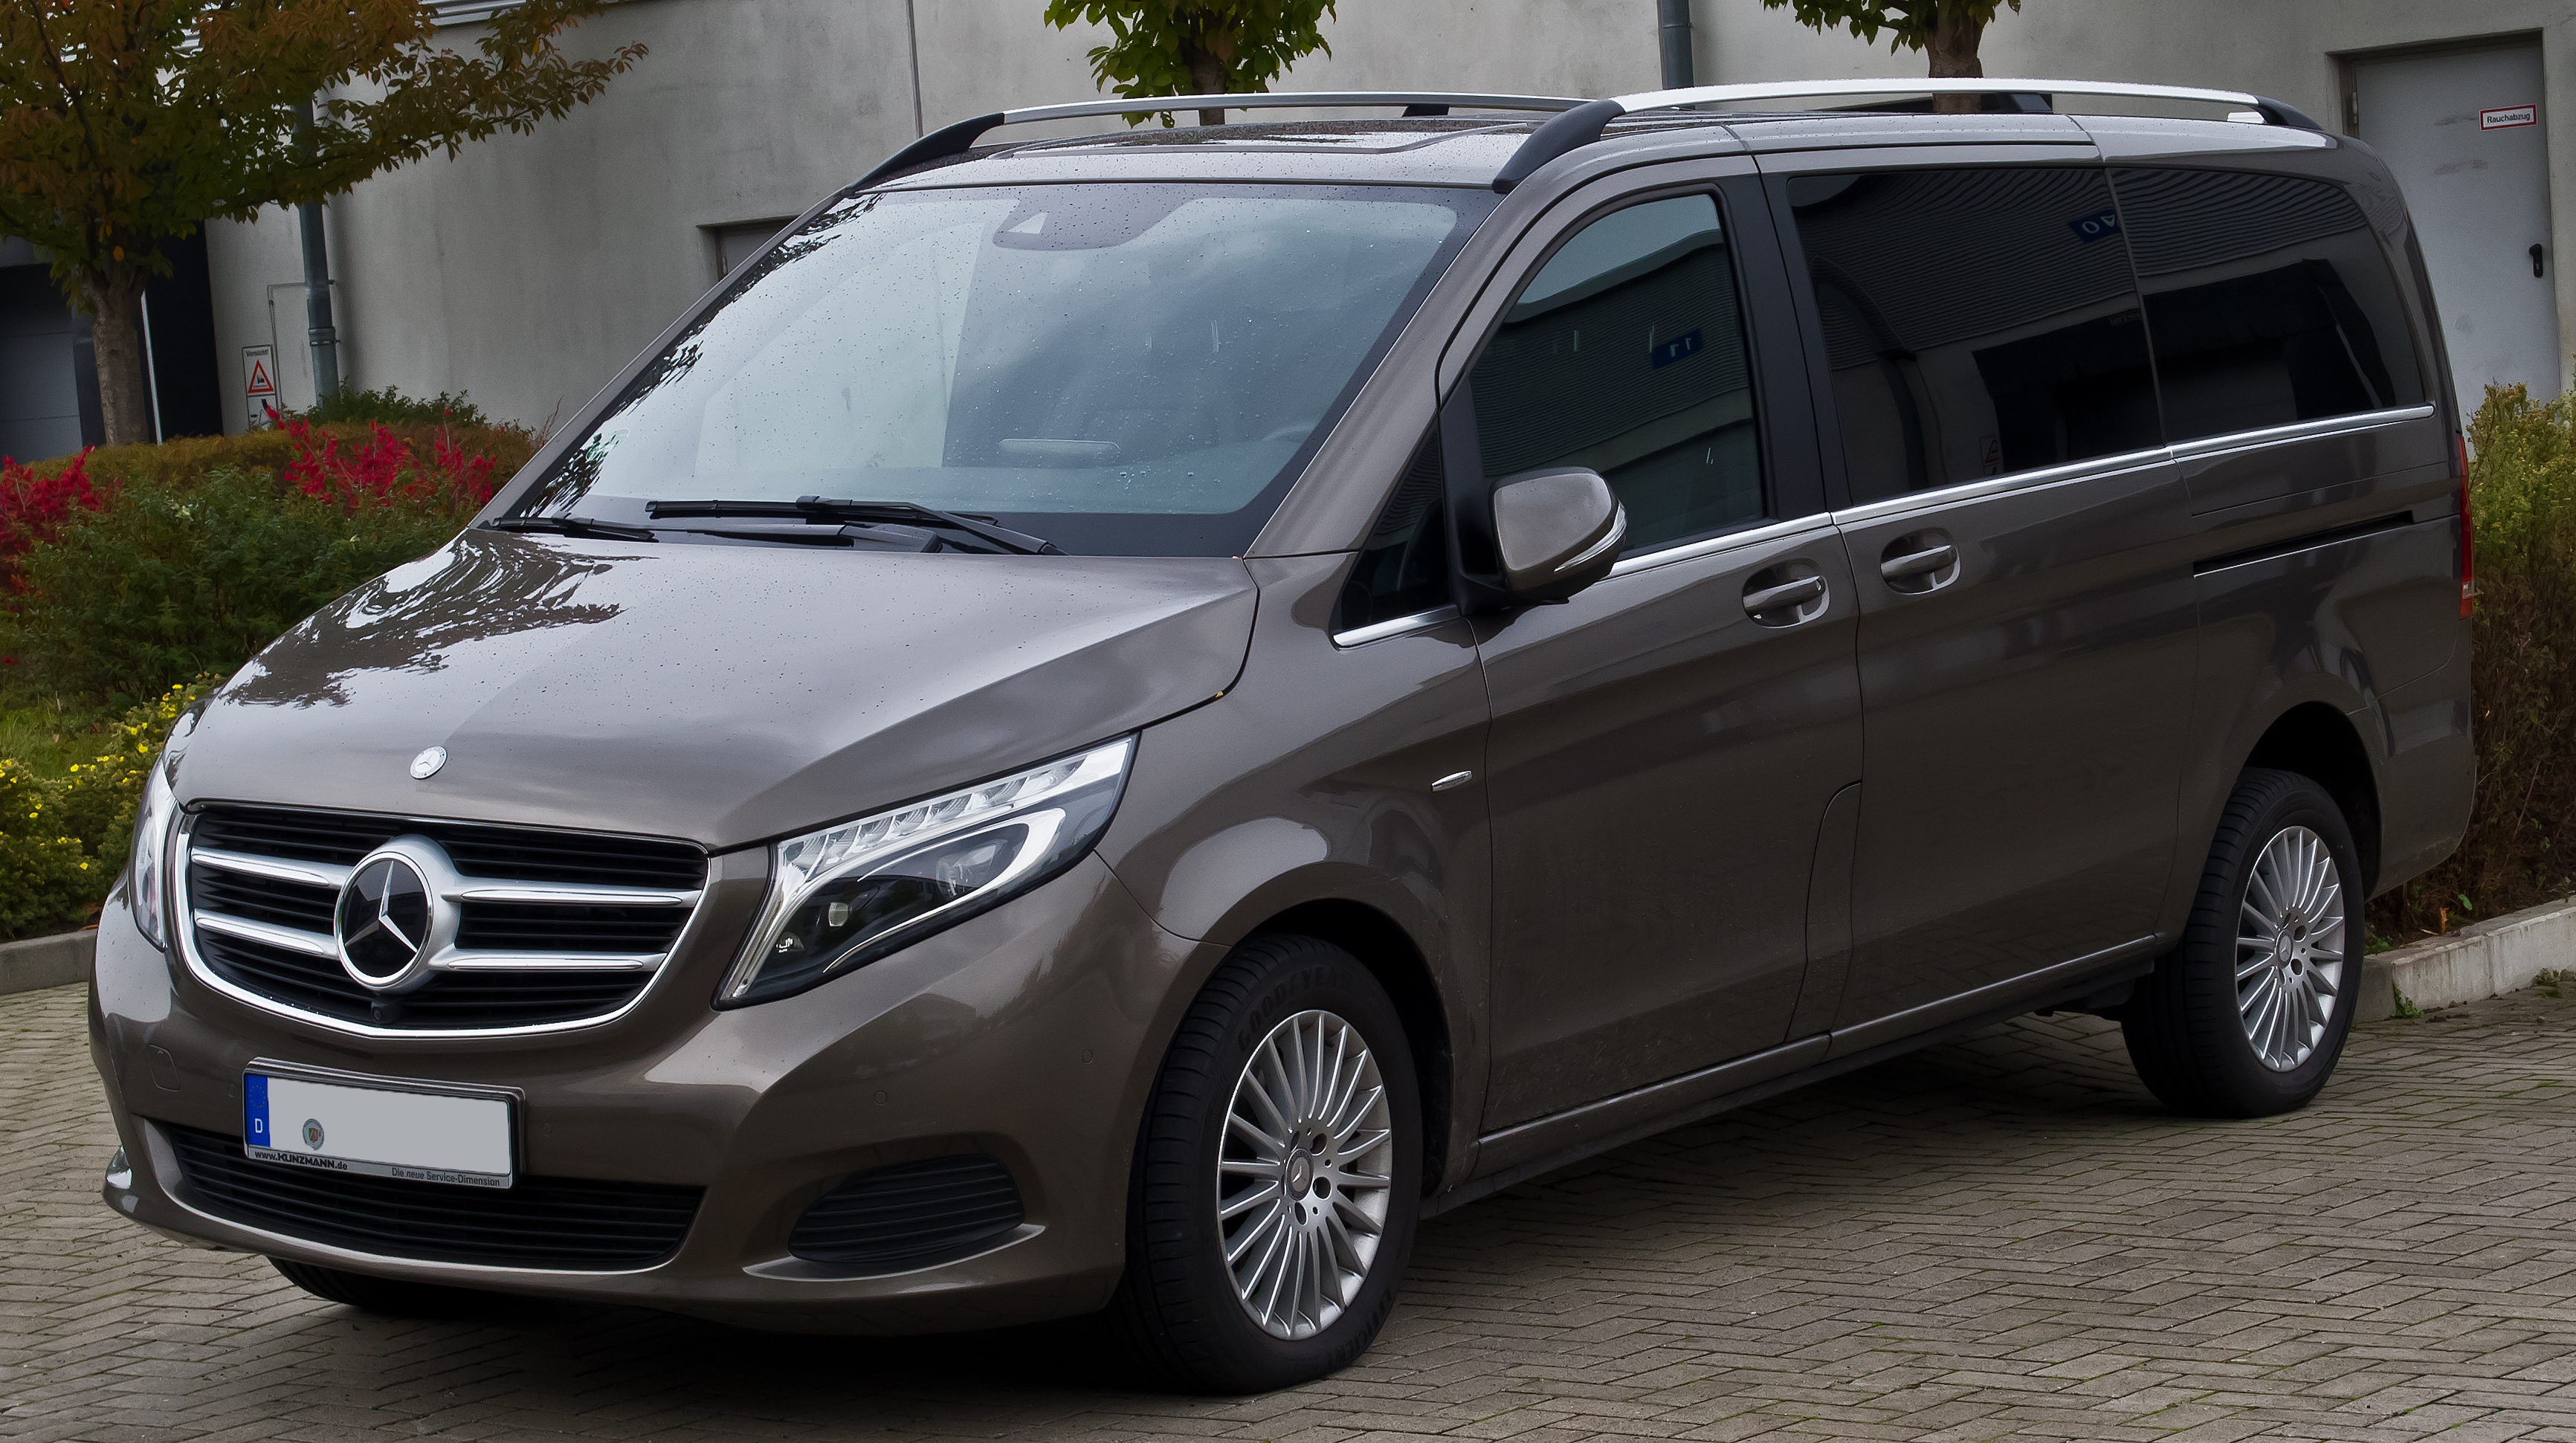 Mercedes-benz v photo - 6